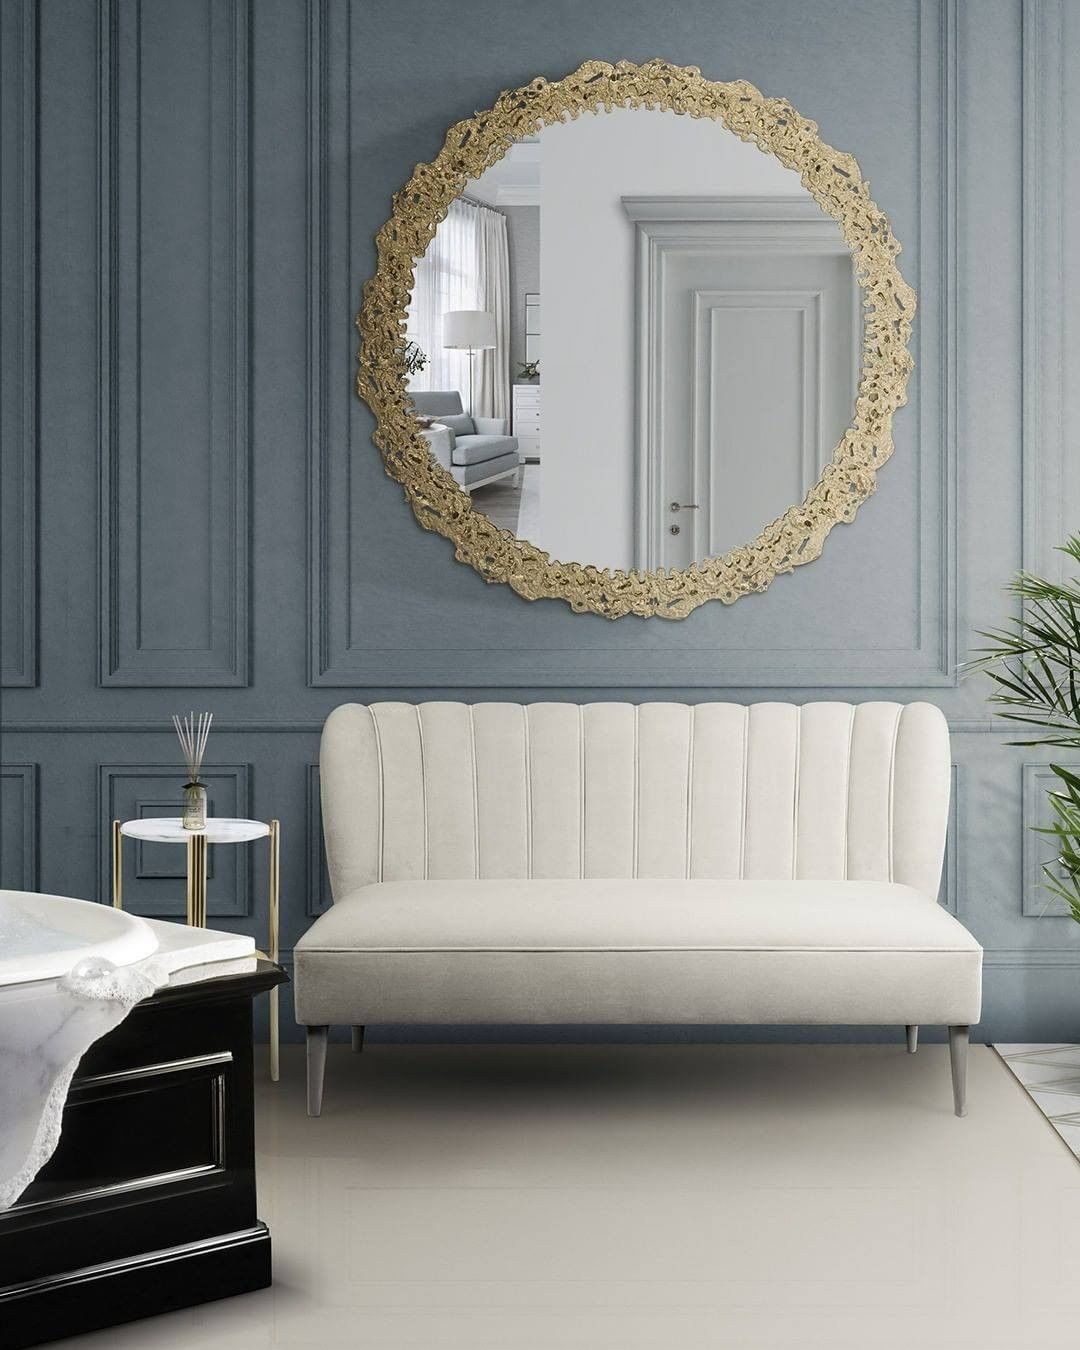 Mirror Decorating At Home: Dazzling Mirror Decor Ideas & Mistakes To Avoid